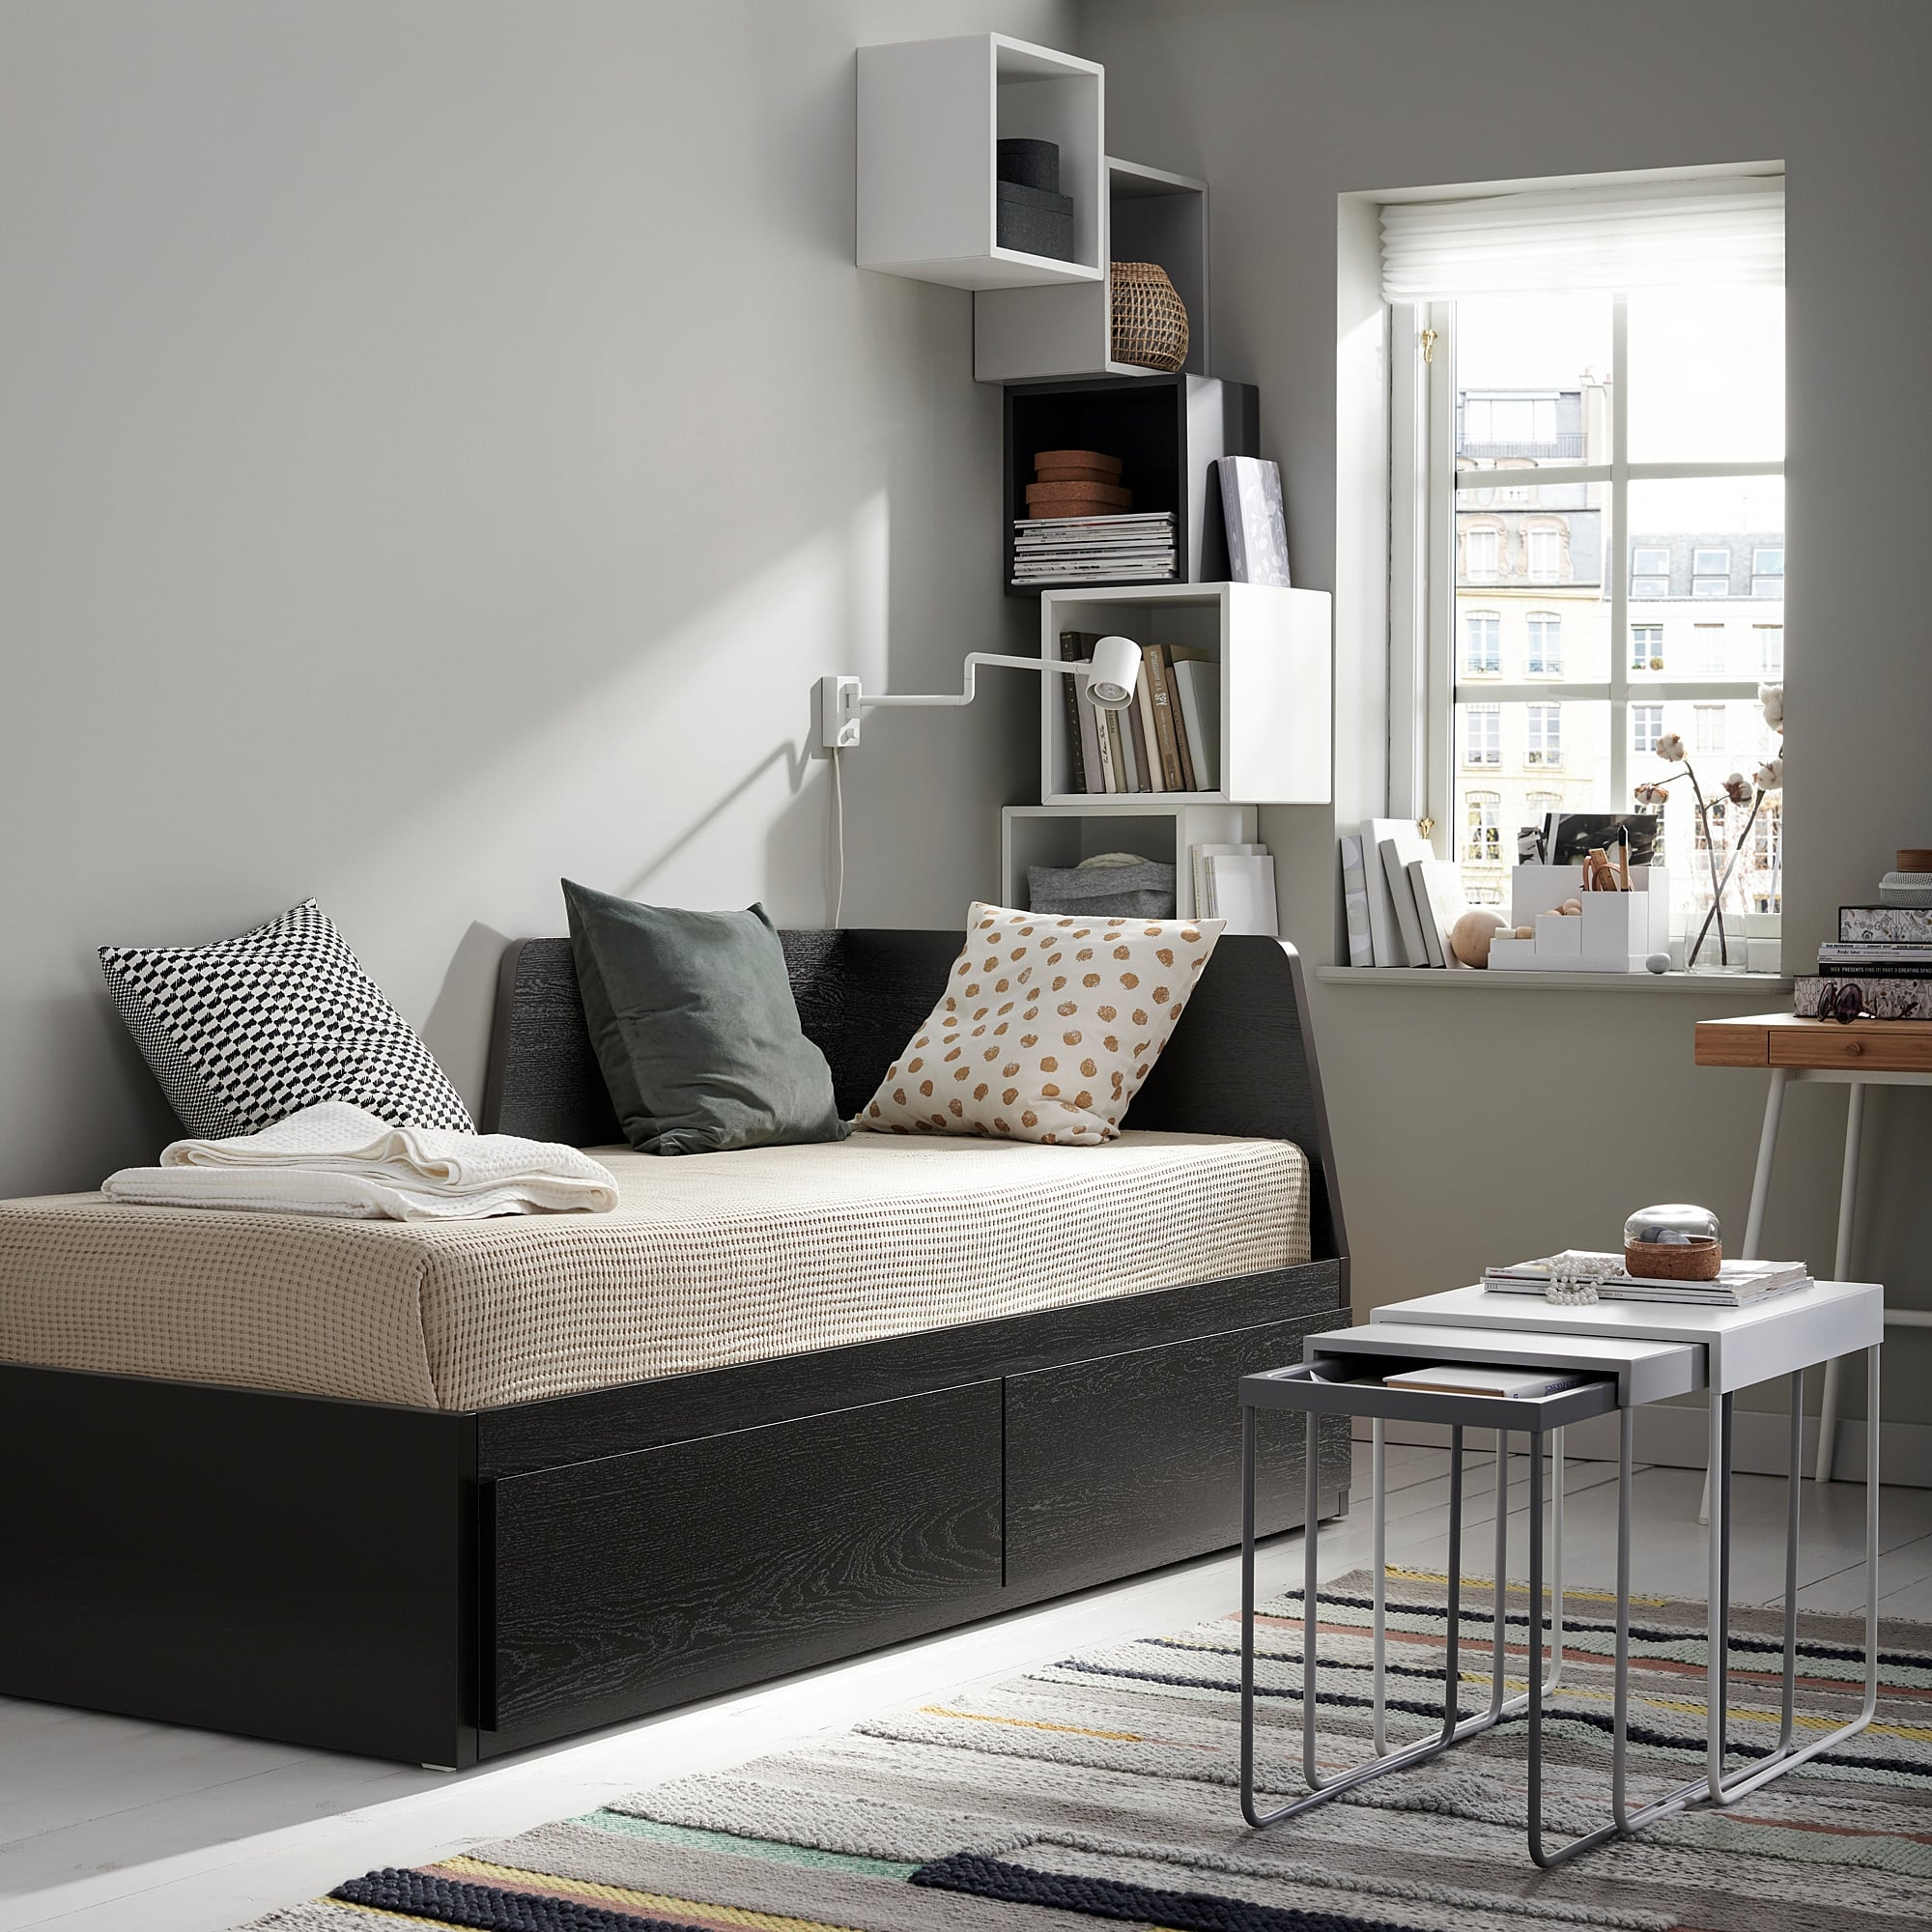 Flekke Daybed Frame With Two Drawers Ikea Has All Of The Space Saving Furniture Your Small Bedroom Needs For Cheap Popsugar Home Photo 13